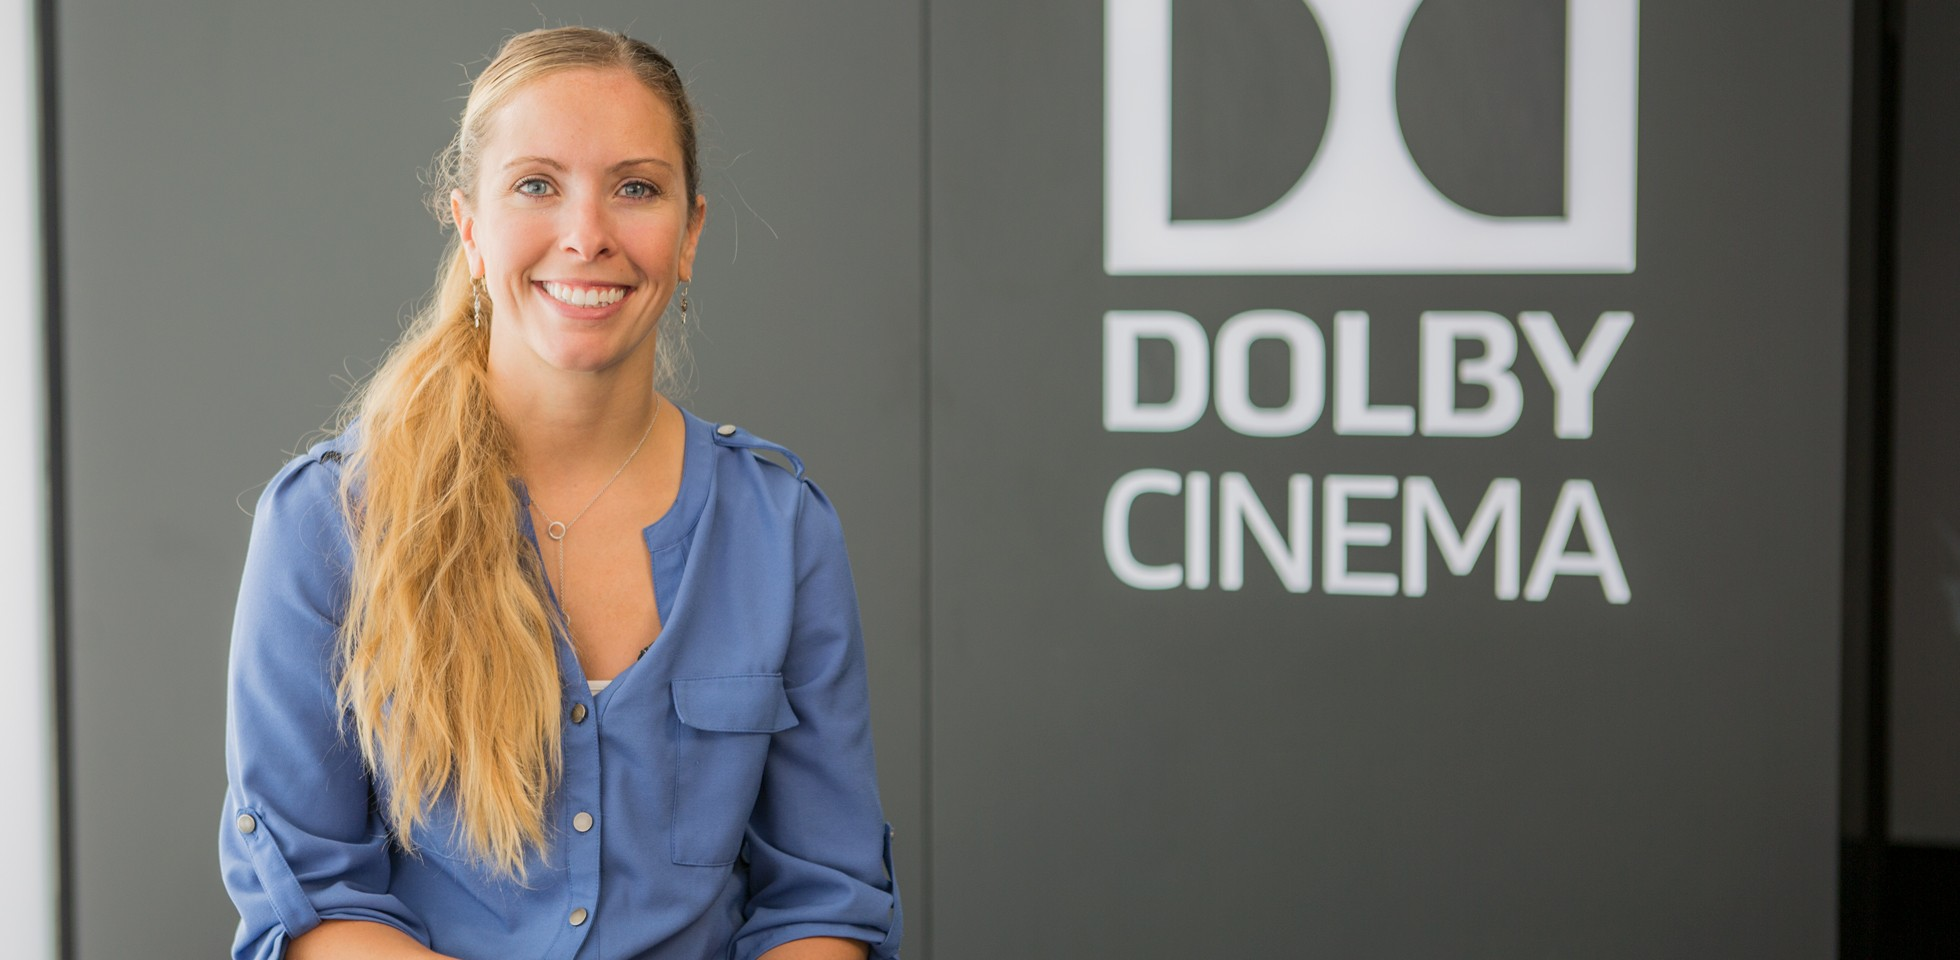 Ashley Penna, Staff Engineer, Cinema - Dolby Careers